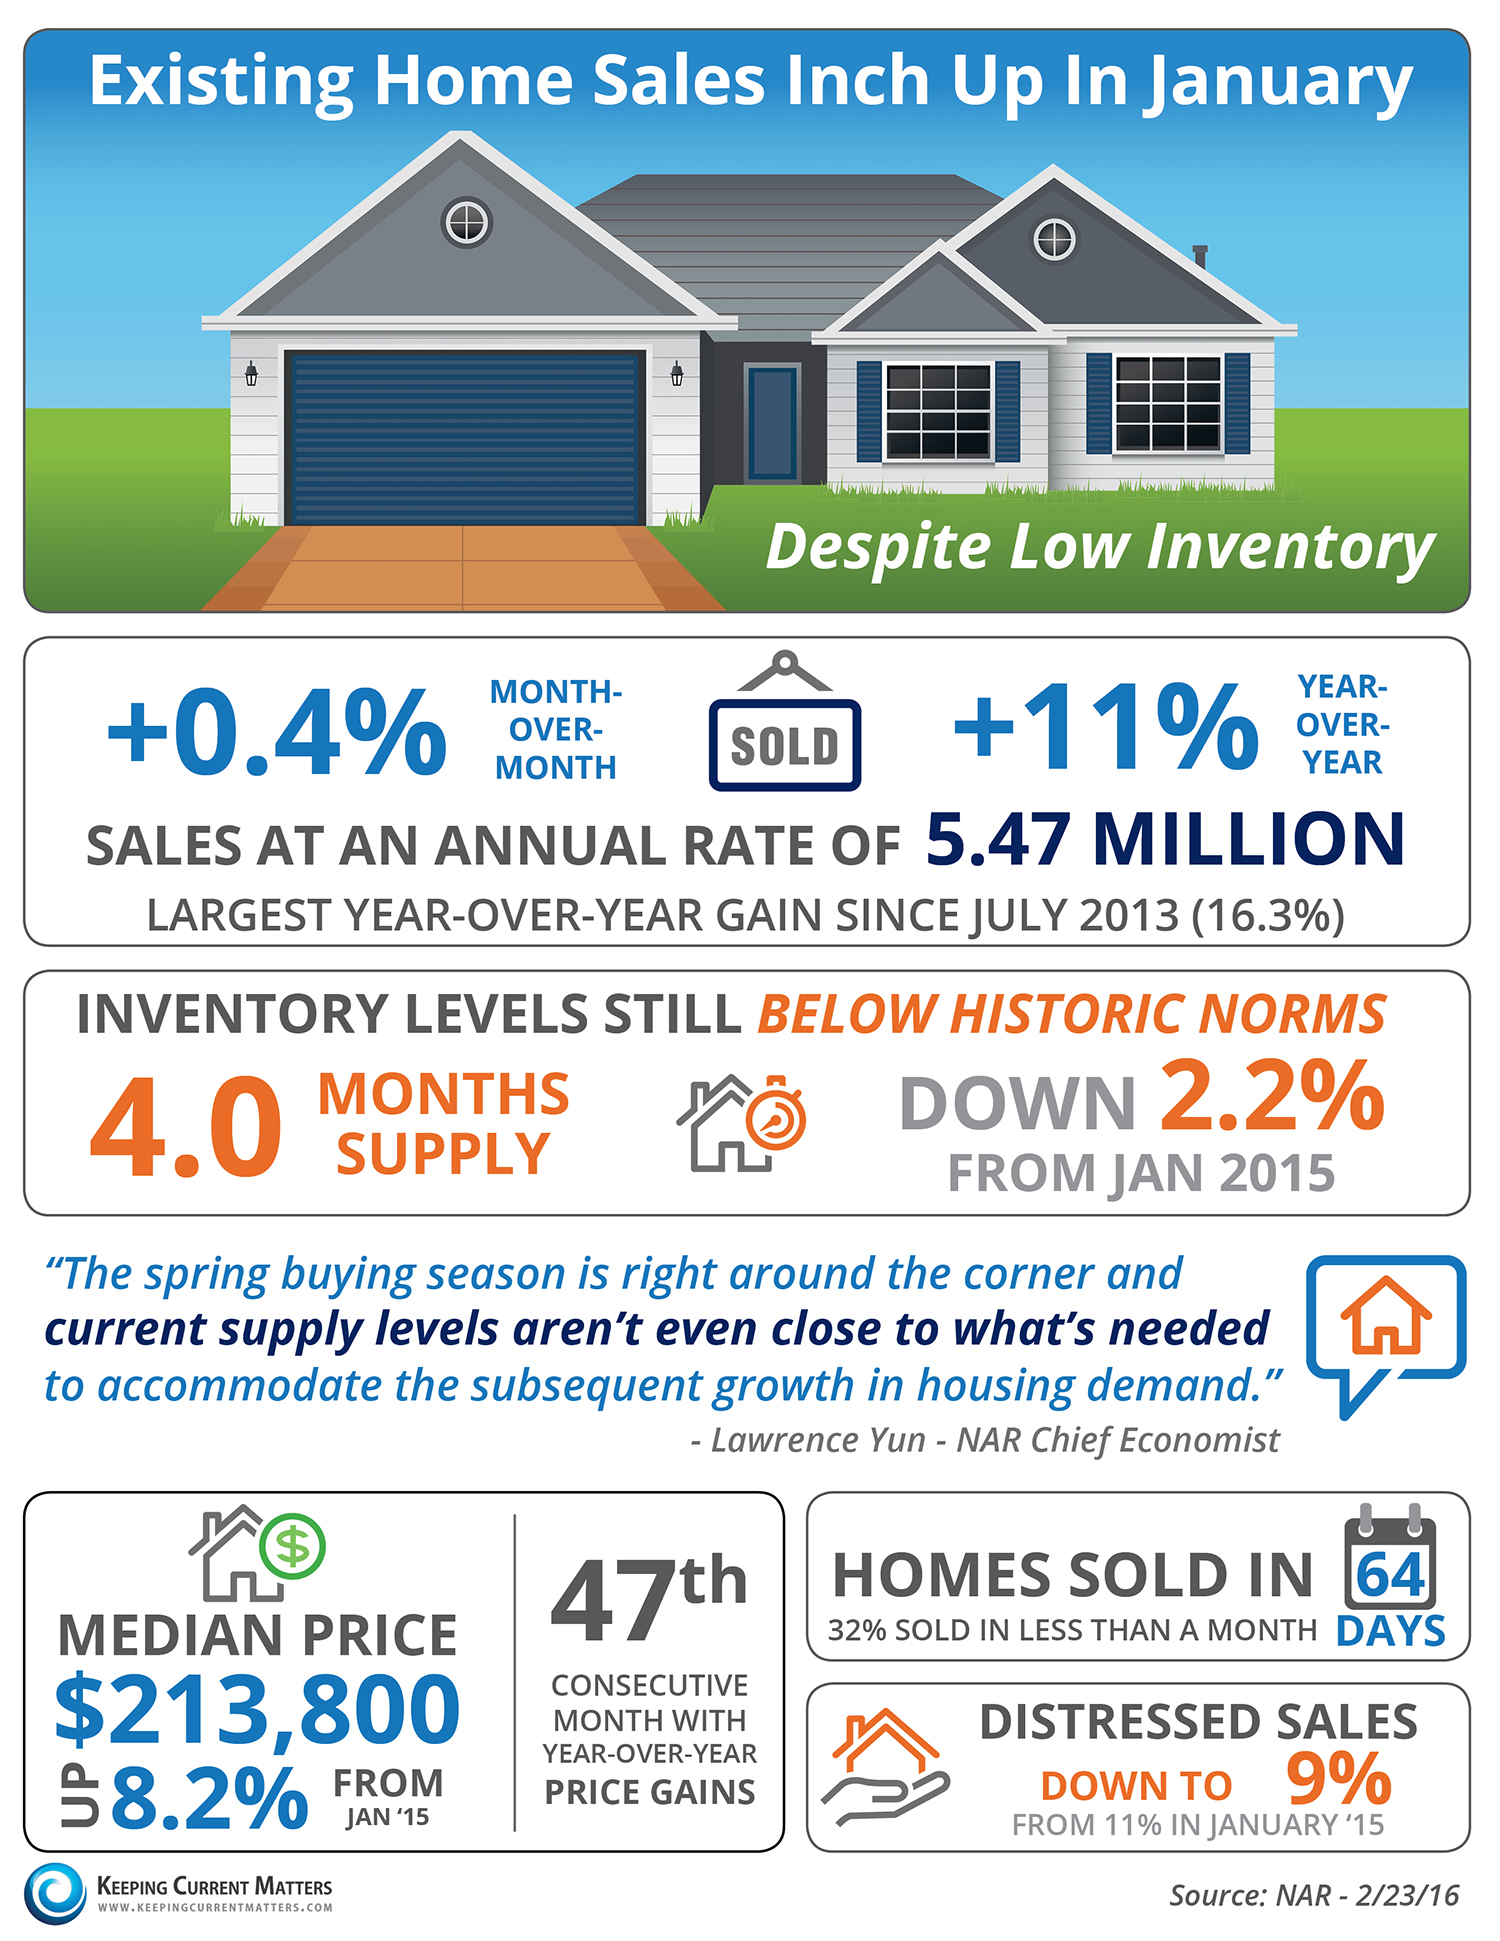 Existing homes sales